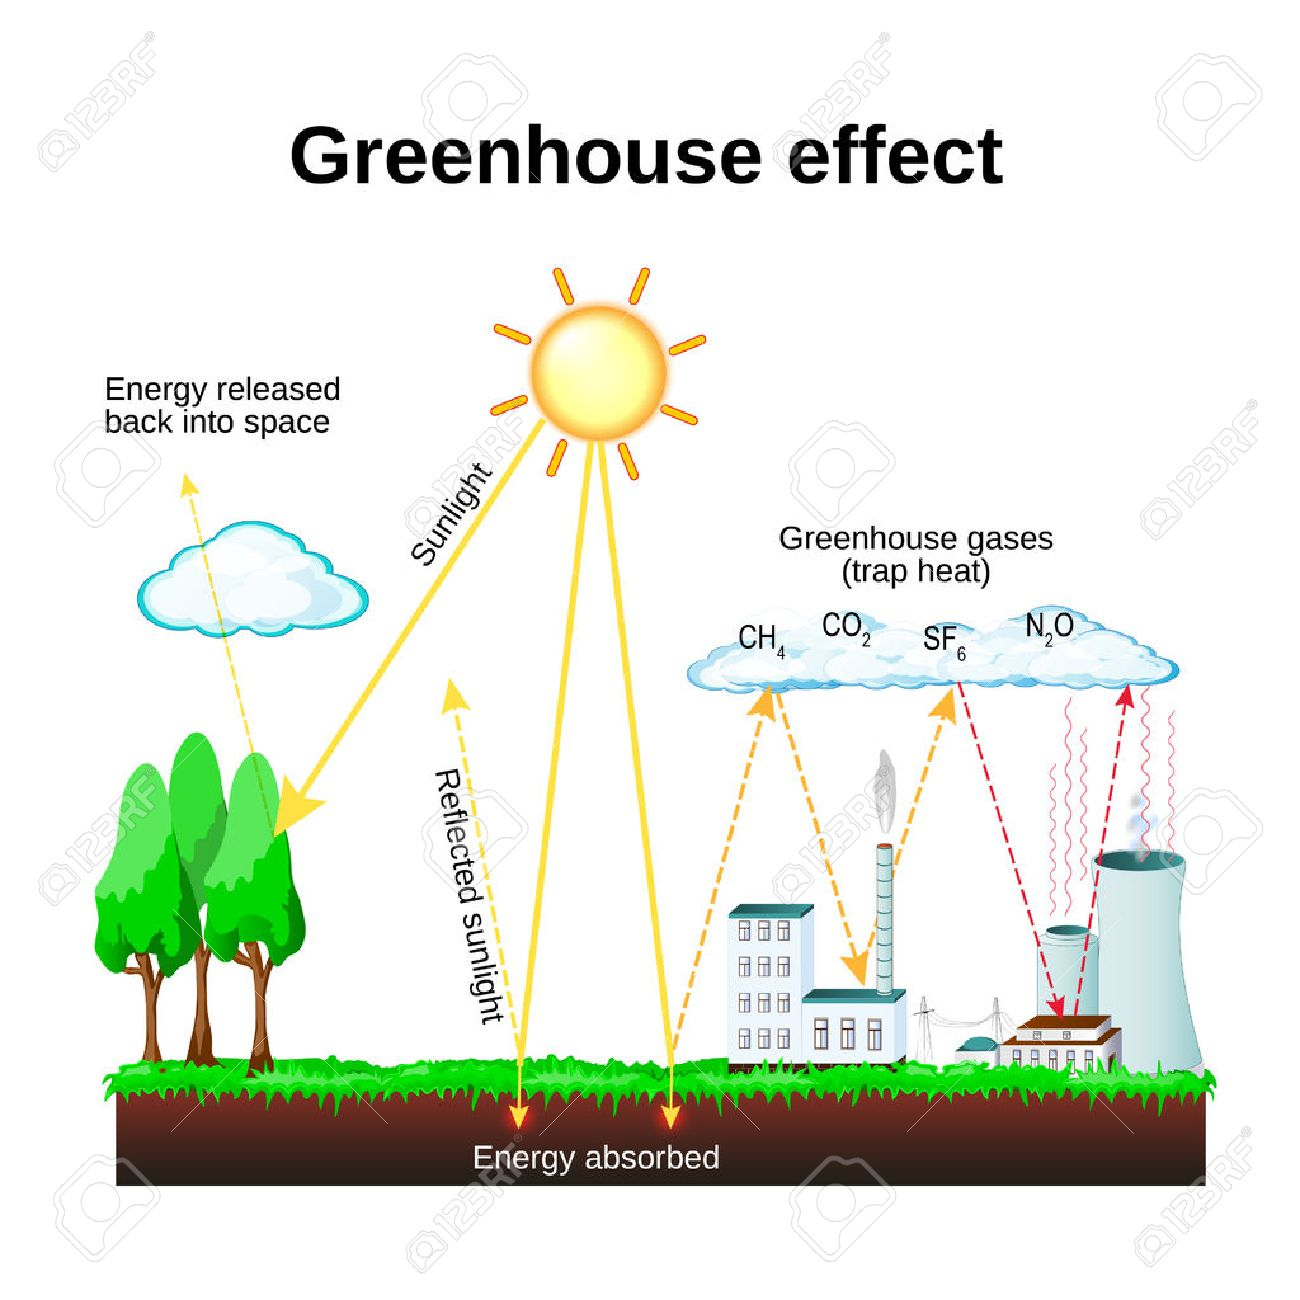 hight resolution of greenhouse effect diagram showing how the greenhouse effect works global warming stock vector